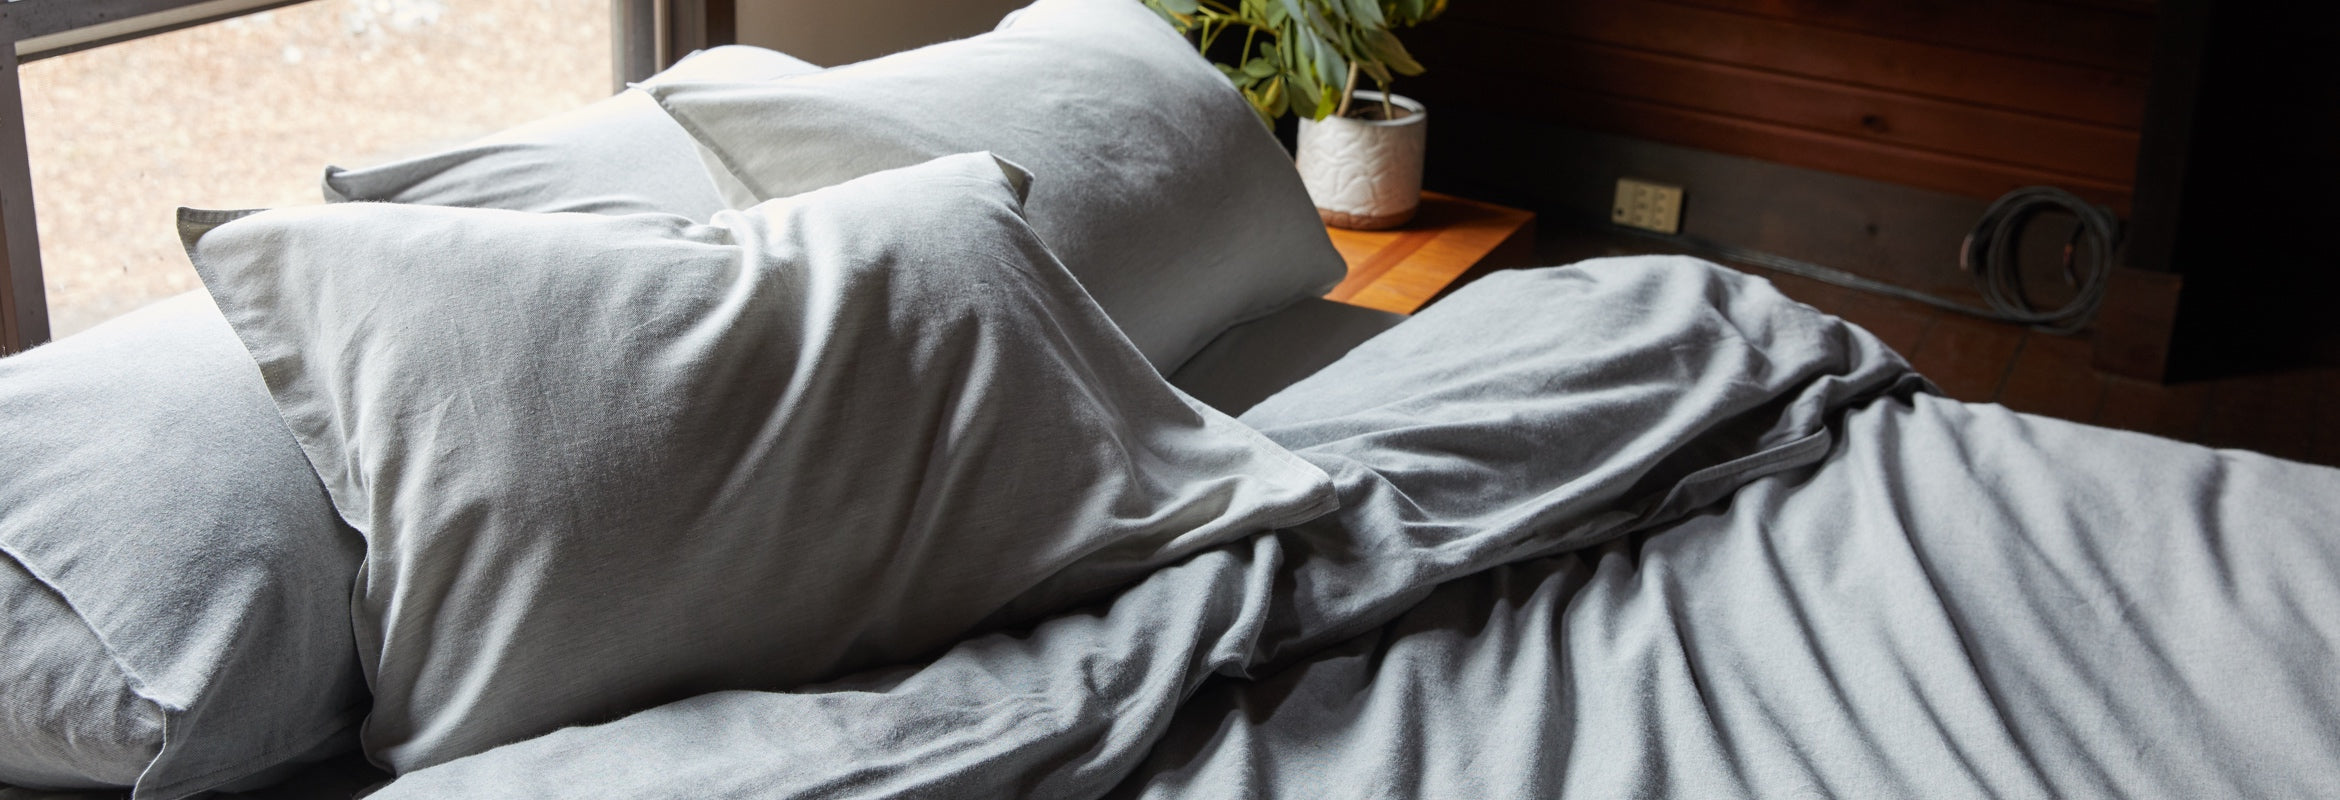 Couple in bed made up in Heathered Cashmere